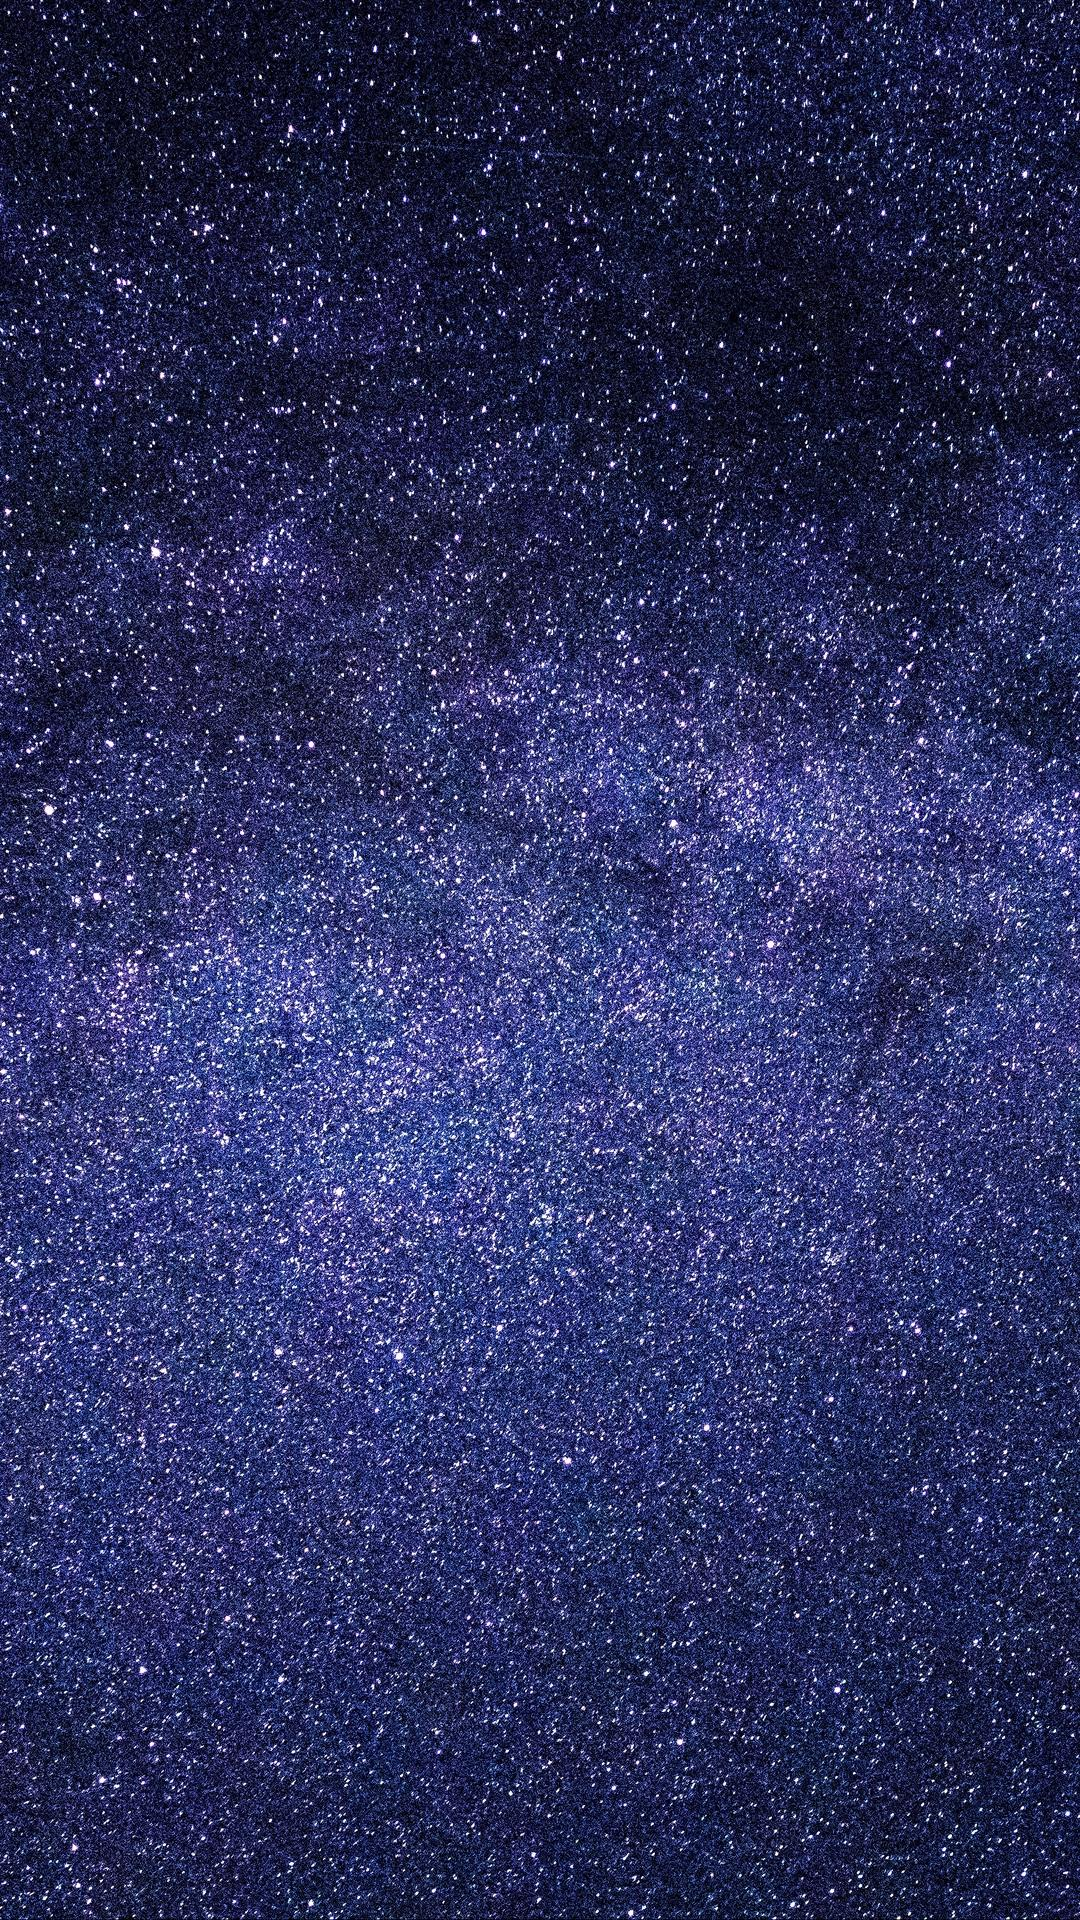 space texture dark pattern color design fabric rough dust background